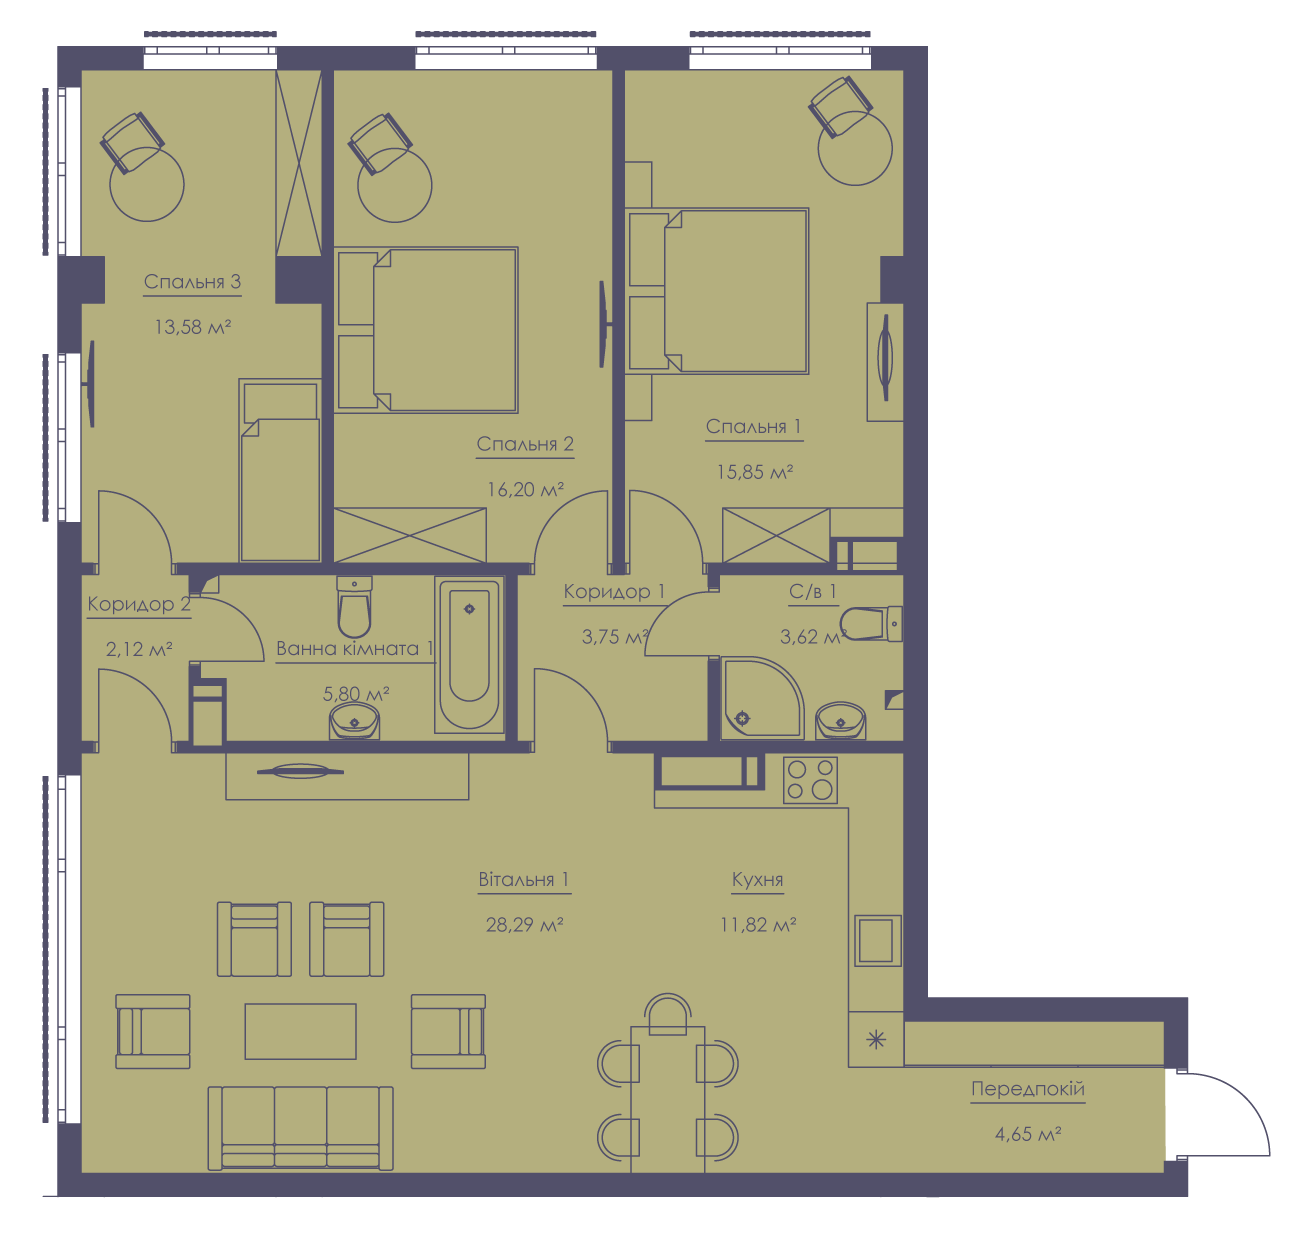 Apartment layout KV_18_2.4b_1_1_6-1